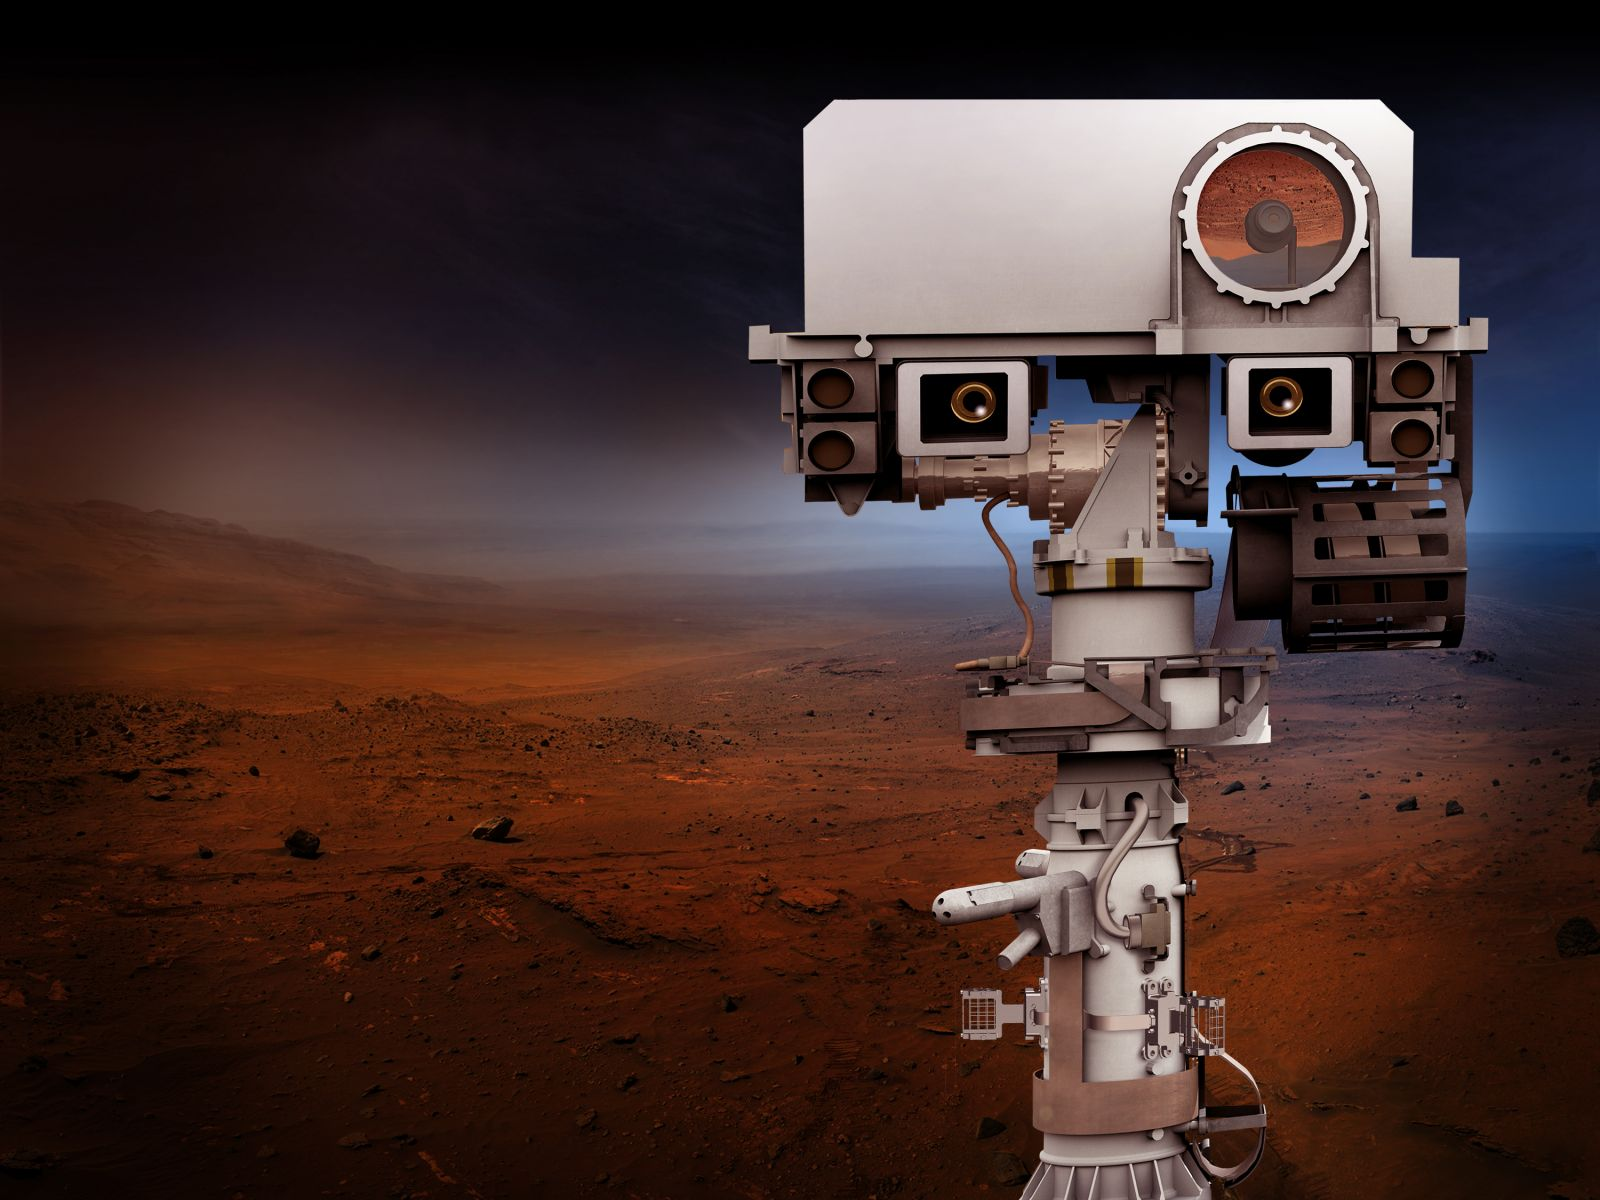 The Mars 2020 mission's rover will be based off of the successful Curiosity rover which touched down on the Red Planet's surface on August 6 of 2012. Image Credit: NASA